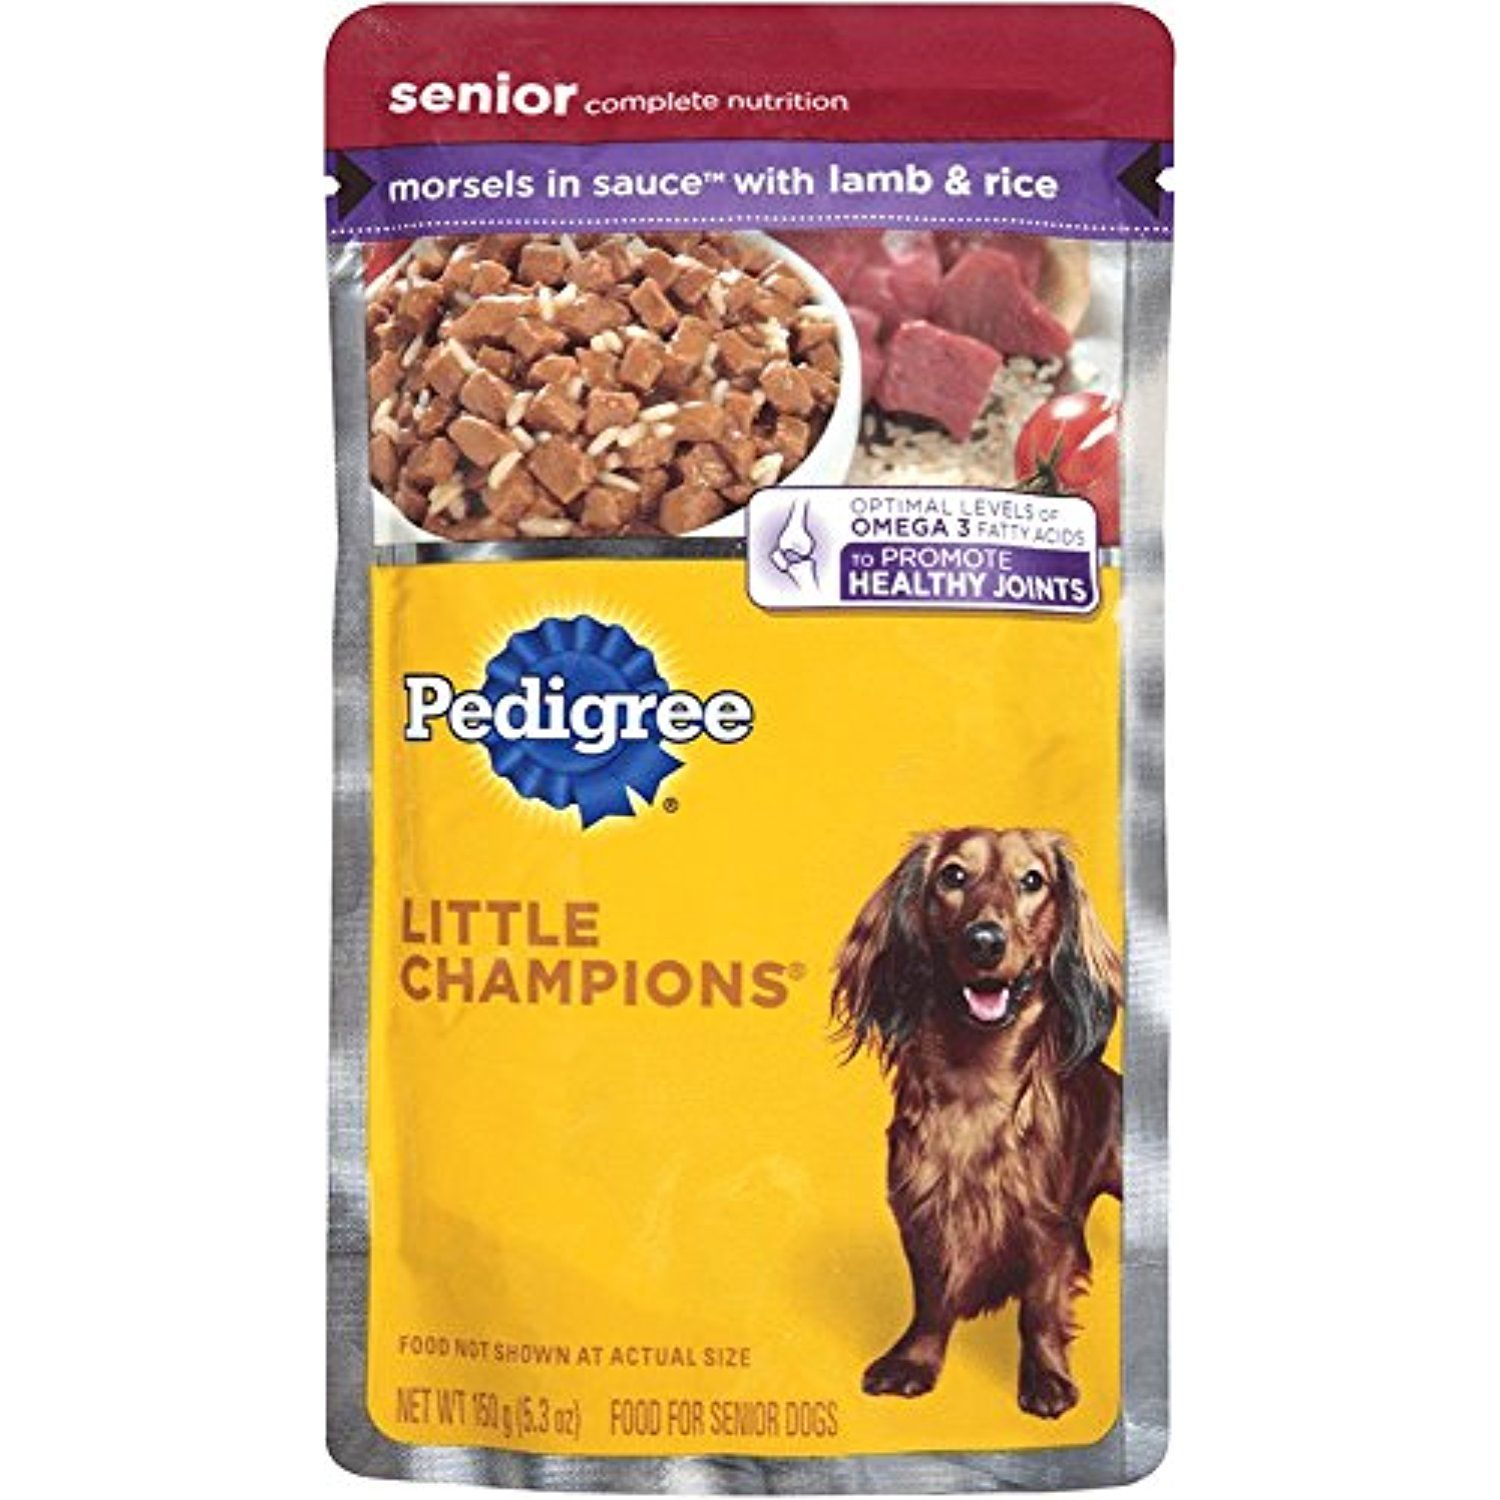 Pedigree Little Champions Senior Complete With Lamb And Rice Wet Dog Food 5 3 Ounces Pack Of 24 You Dog Food Recipes Best Dog Food Senior Dog Food Recipes